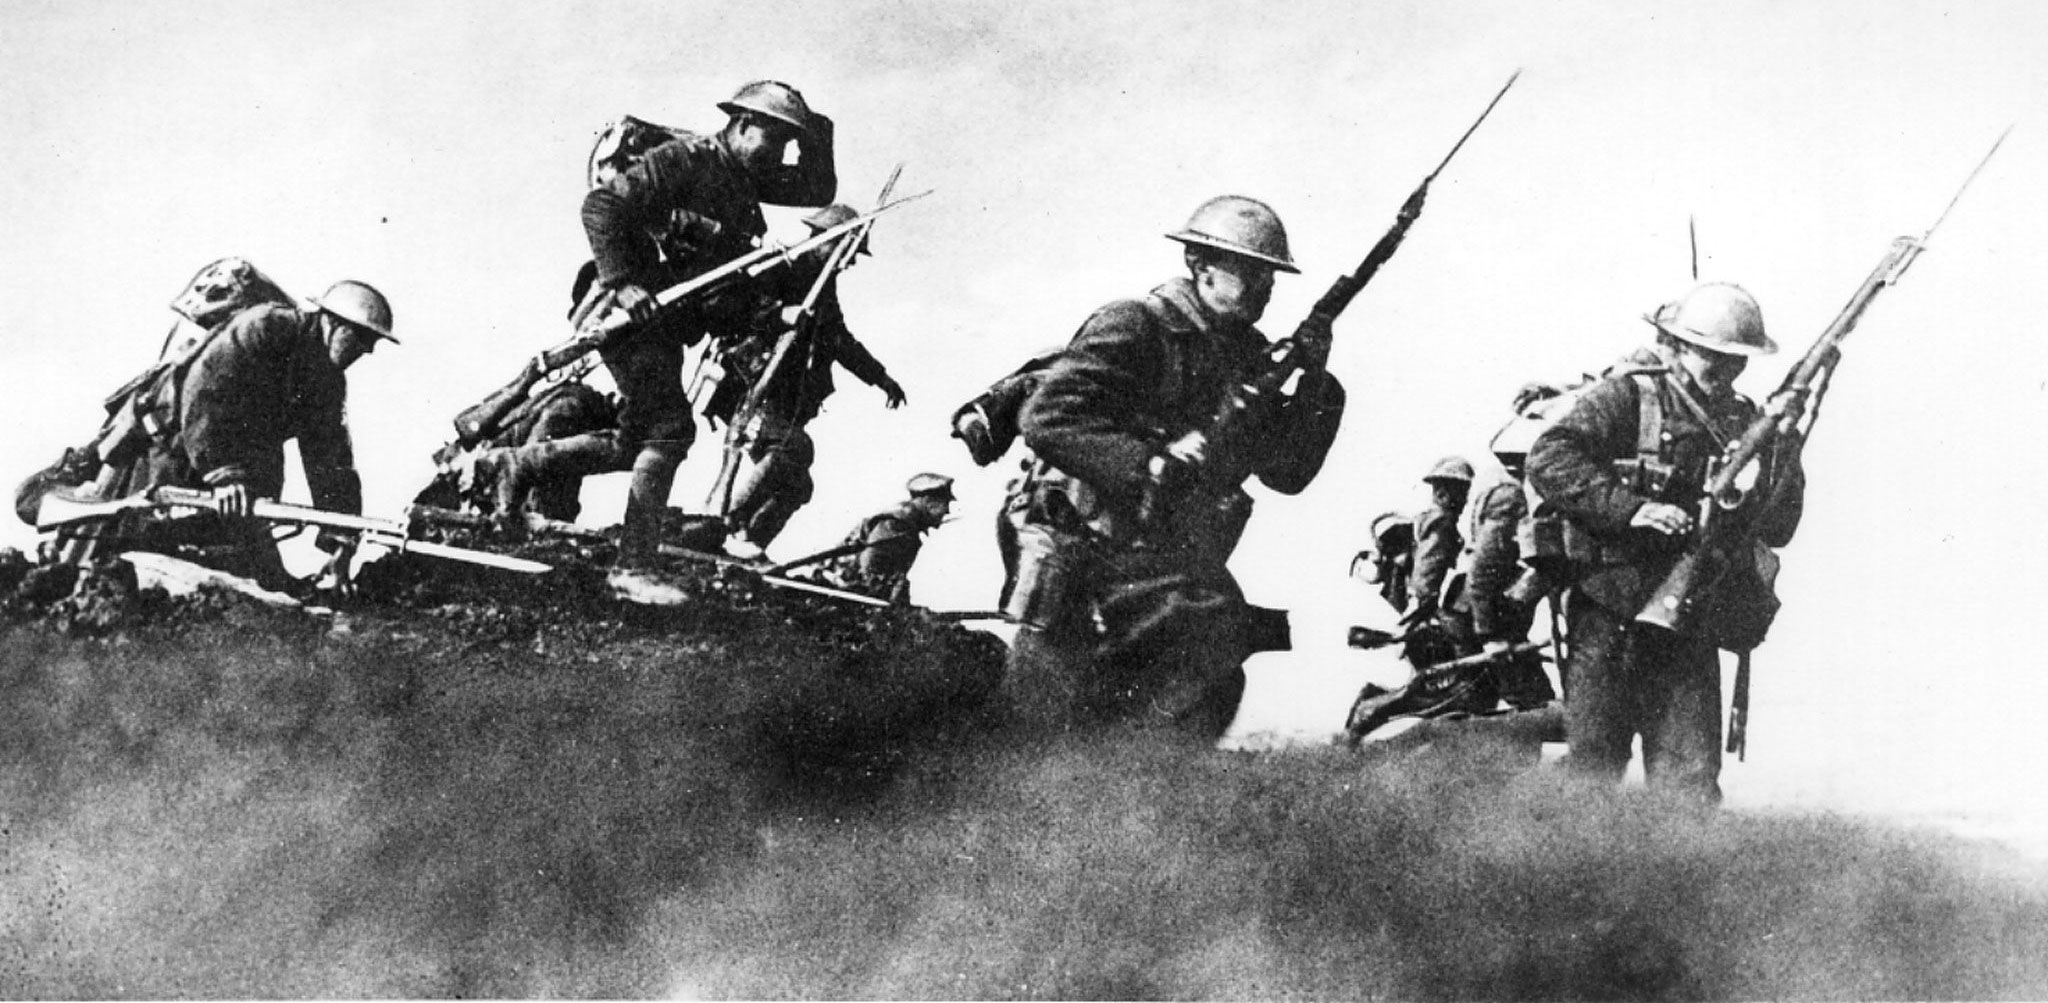 From Canadian Press: soldiers climb out of the trenches in the First World War.